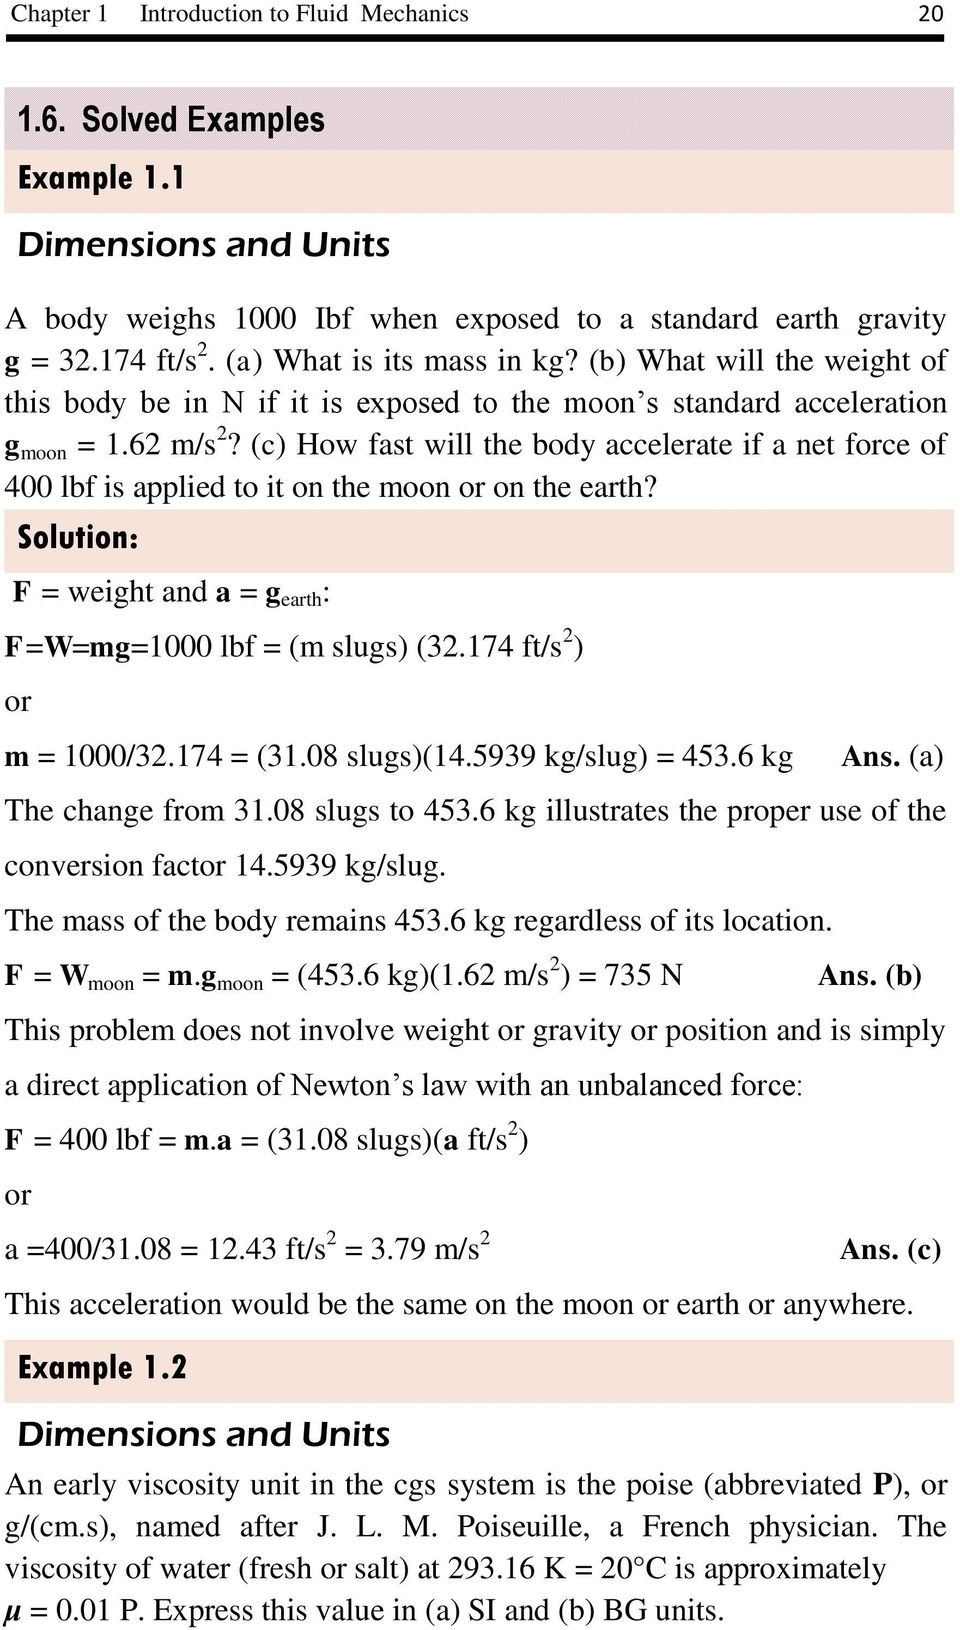 (c) How fast will the body acceleate if a net foce of 4 lbf is applied to it on the moon o on the eath? F = weight and a = g eath : F=W=mg=1 lbf = (m slugs) (3.174 ft/s ) o m = 1/3.174 = (31.